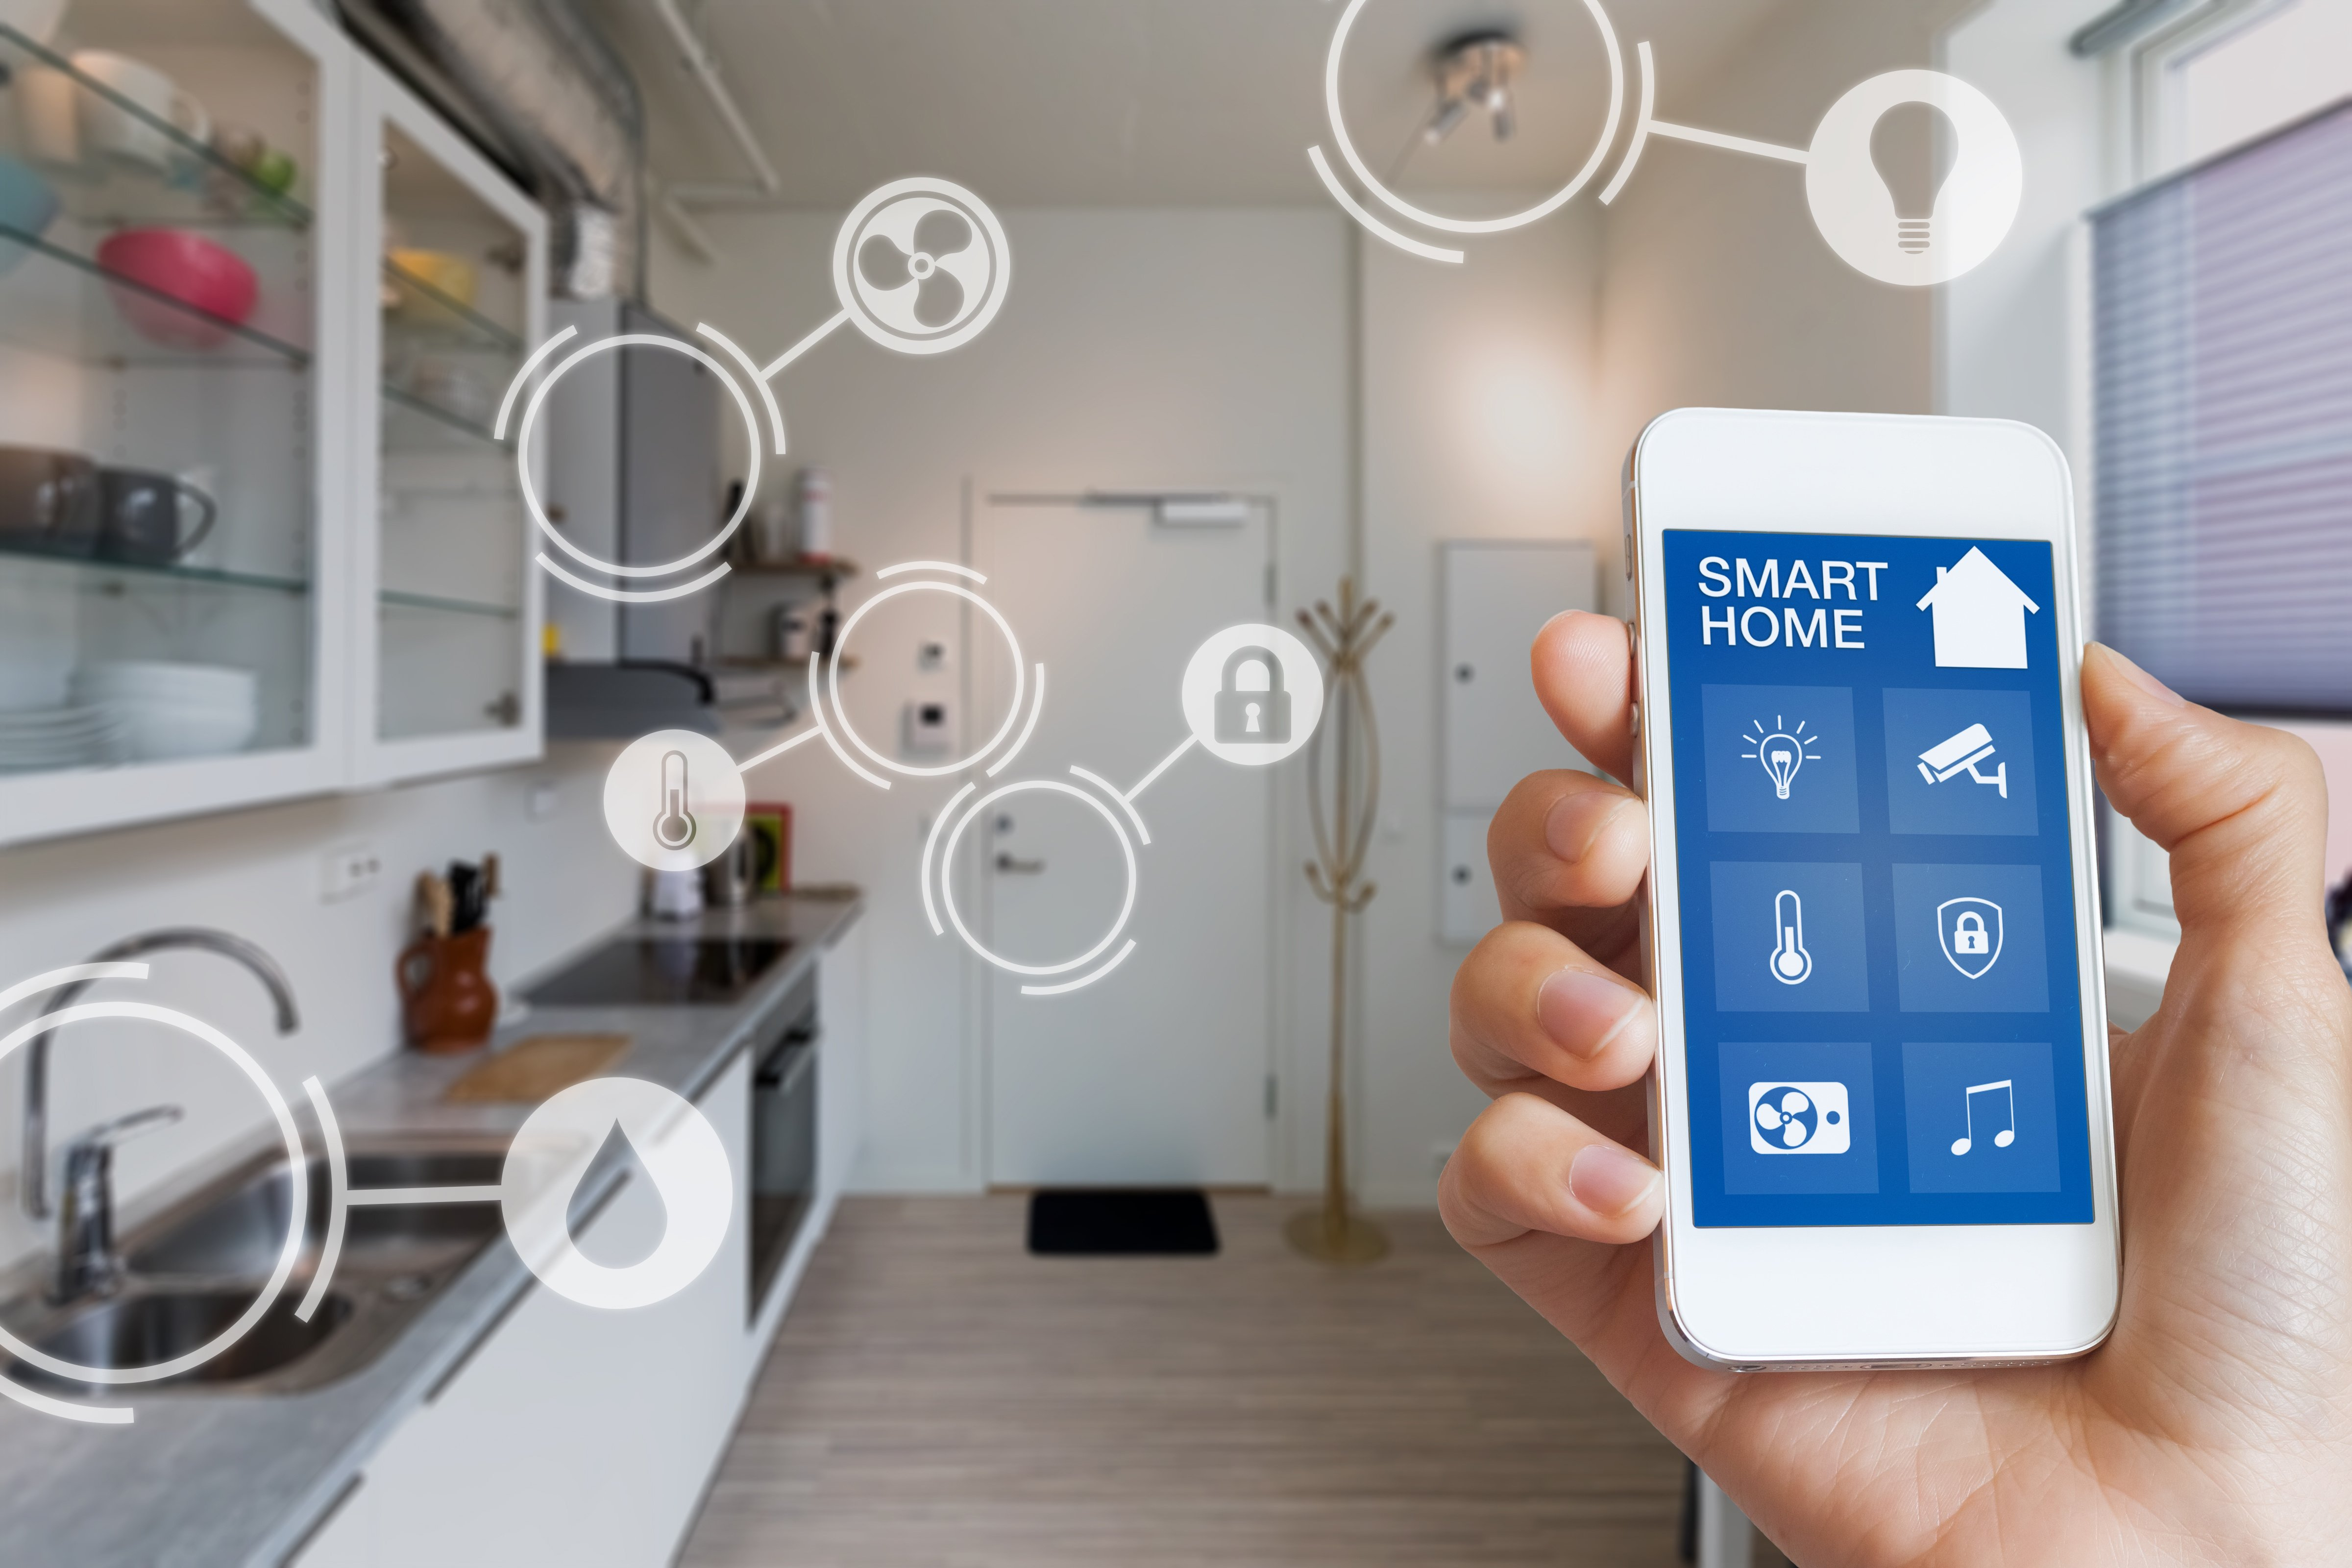 smart home kitchen phone 1